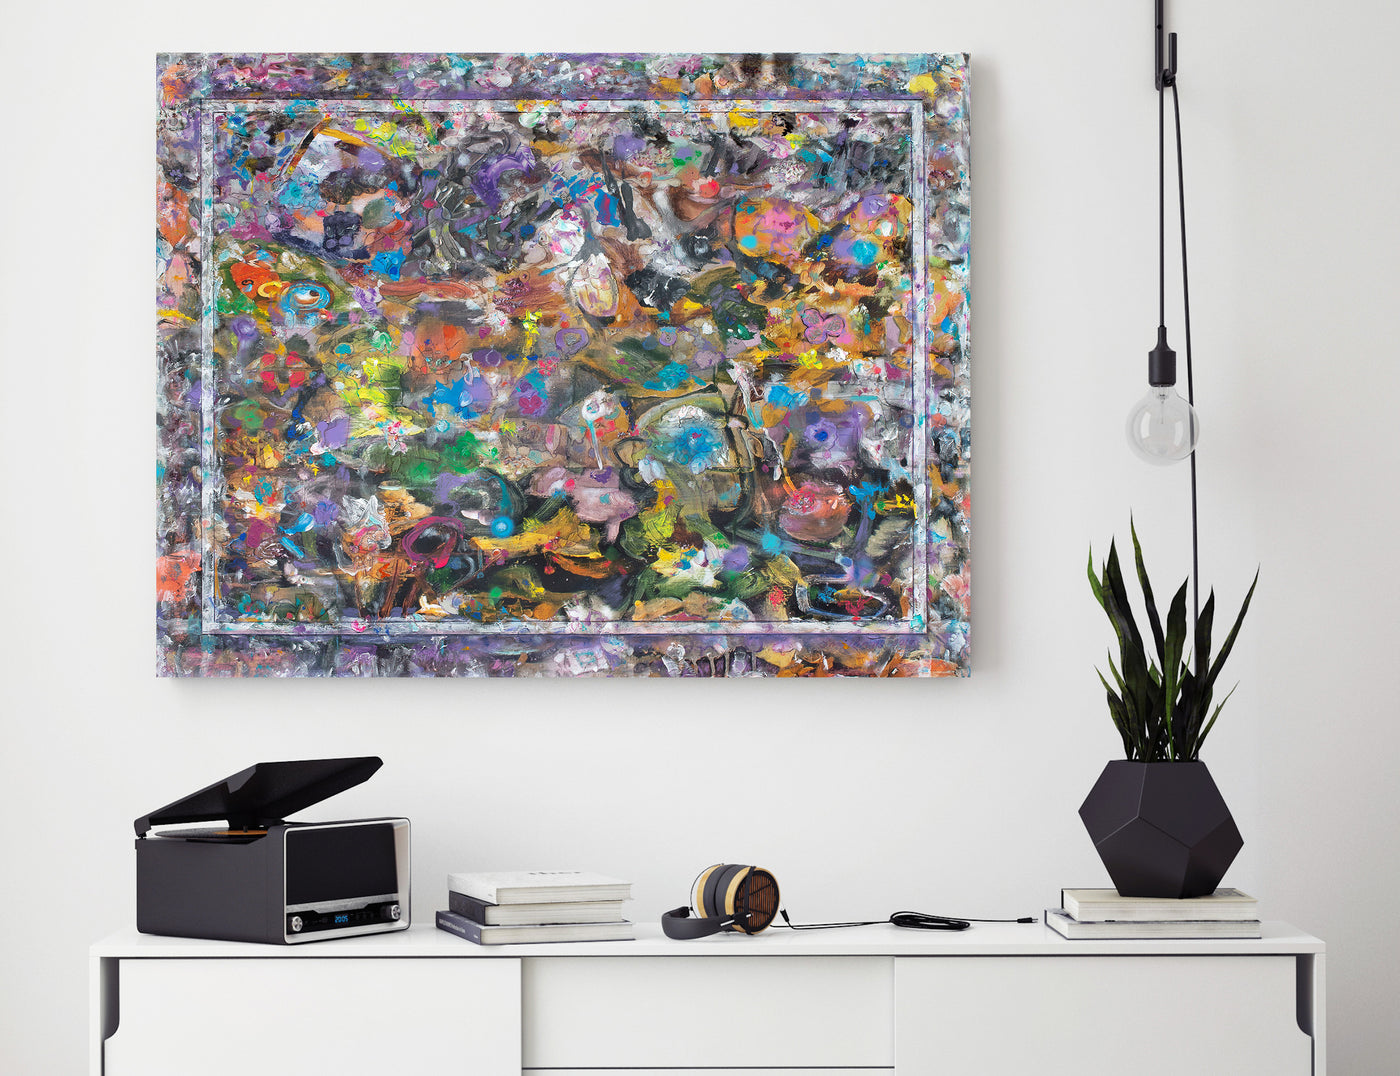 Colourful abstract art for sale